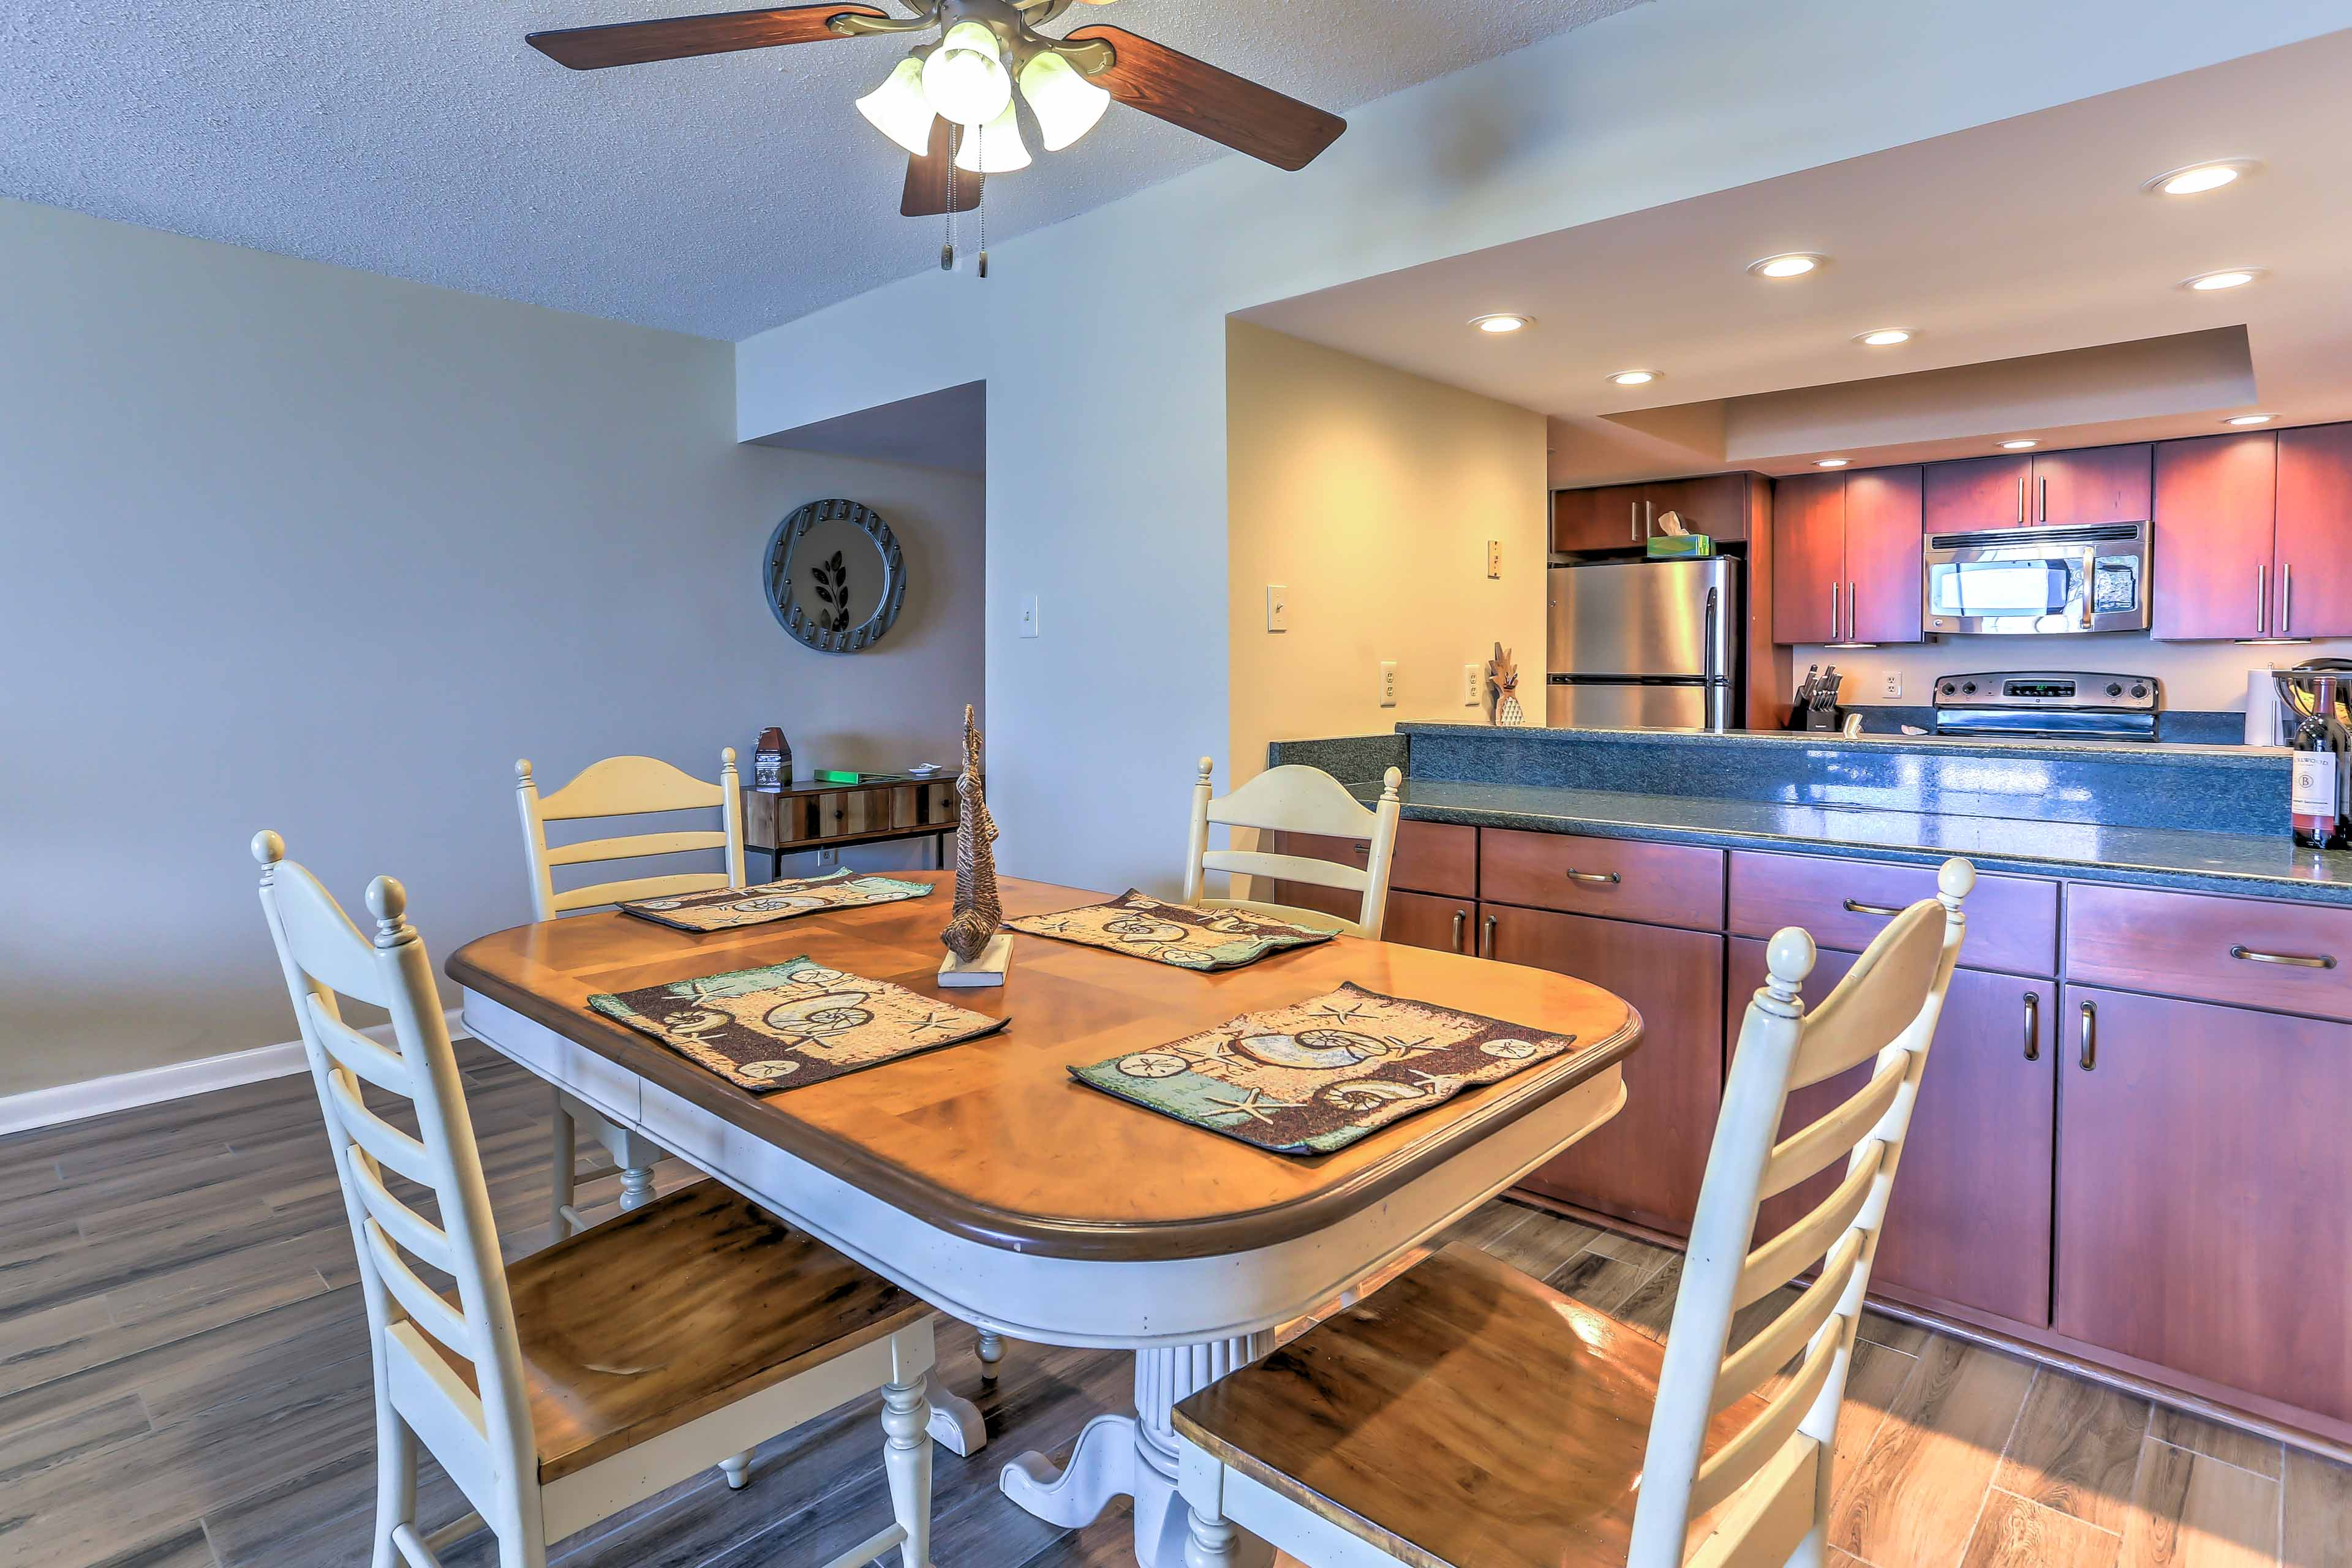 Gather around the dining table set for 4 to enjoy your meals with the group.